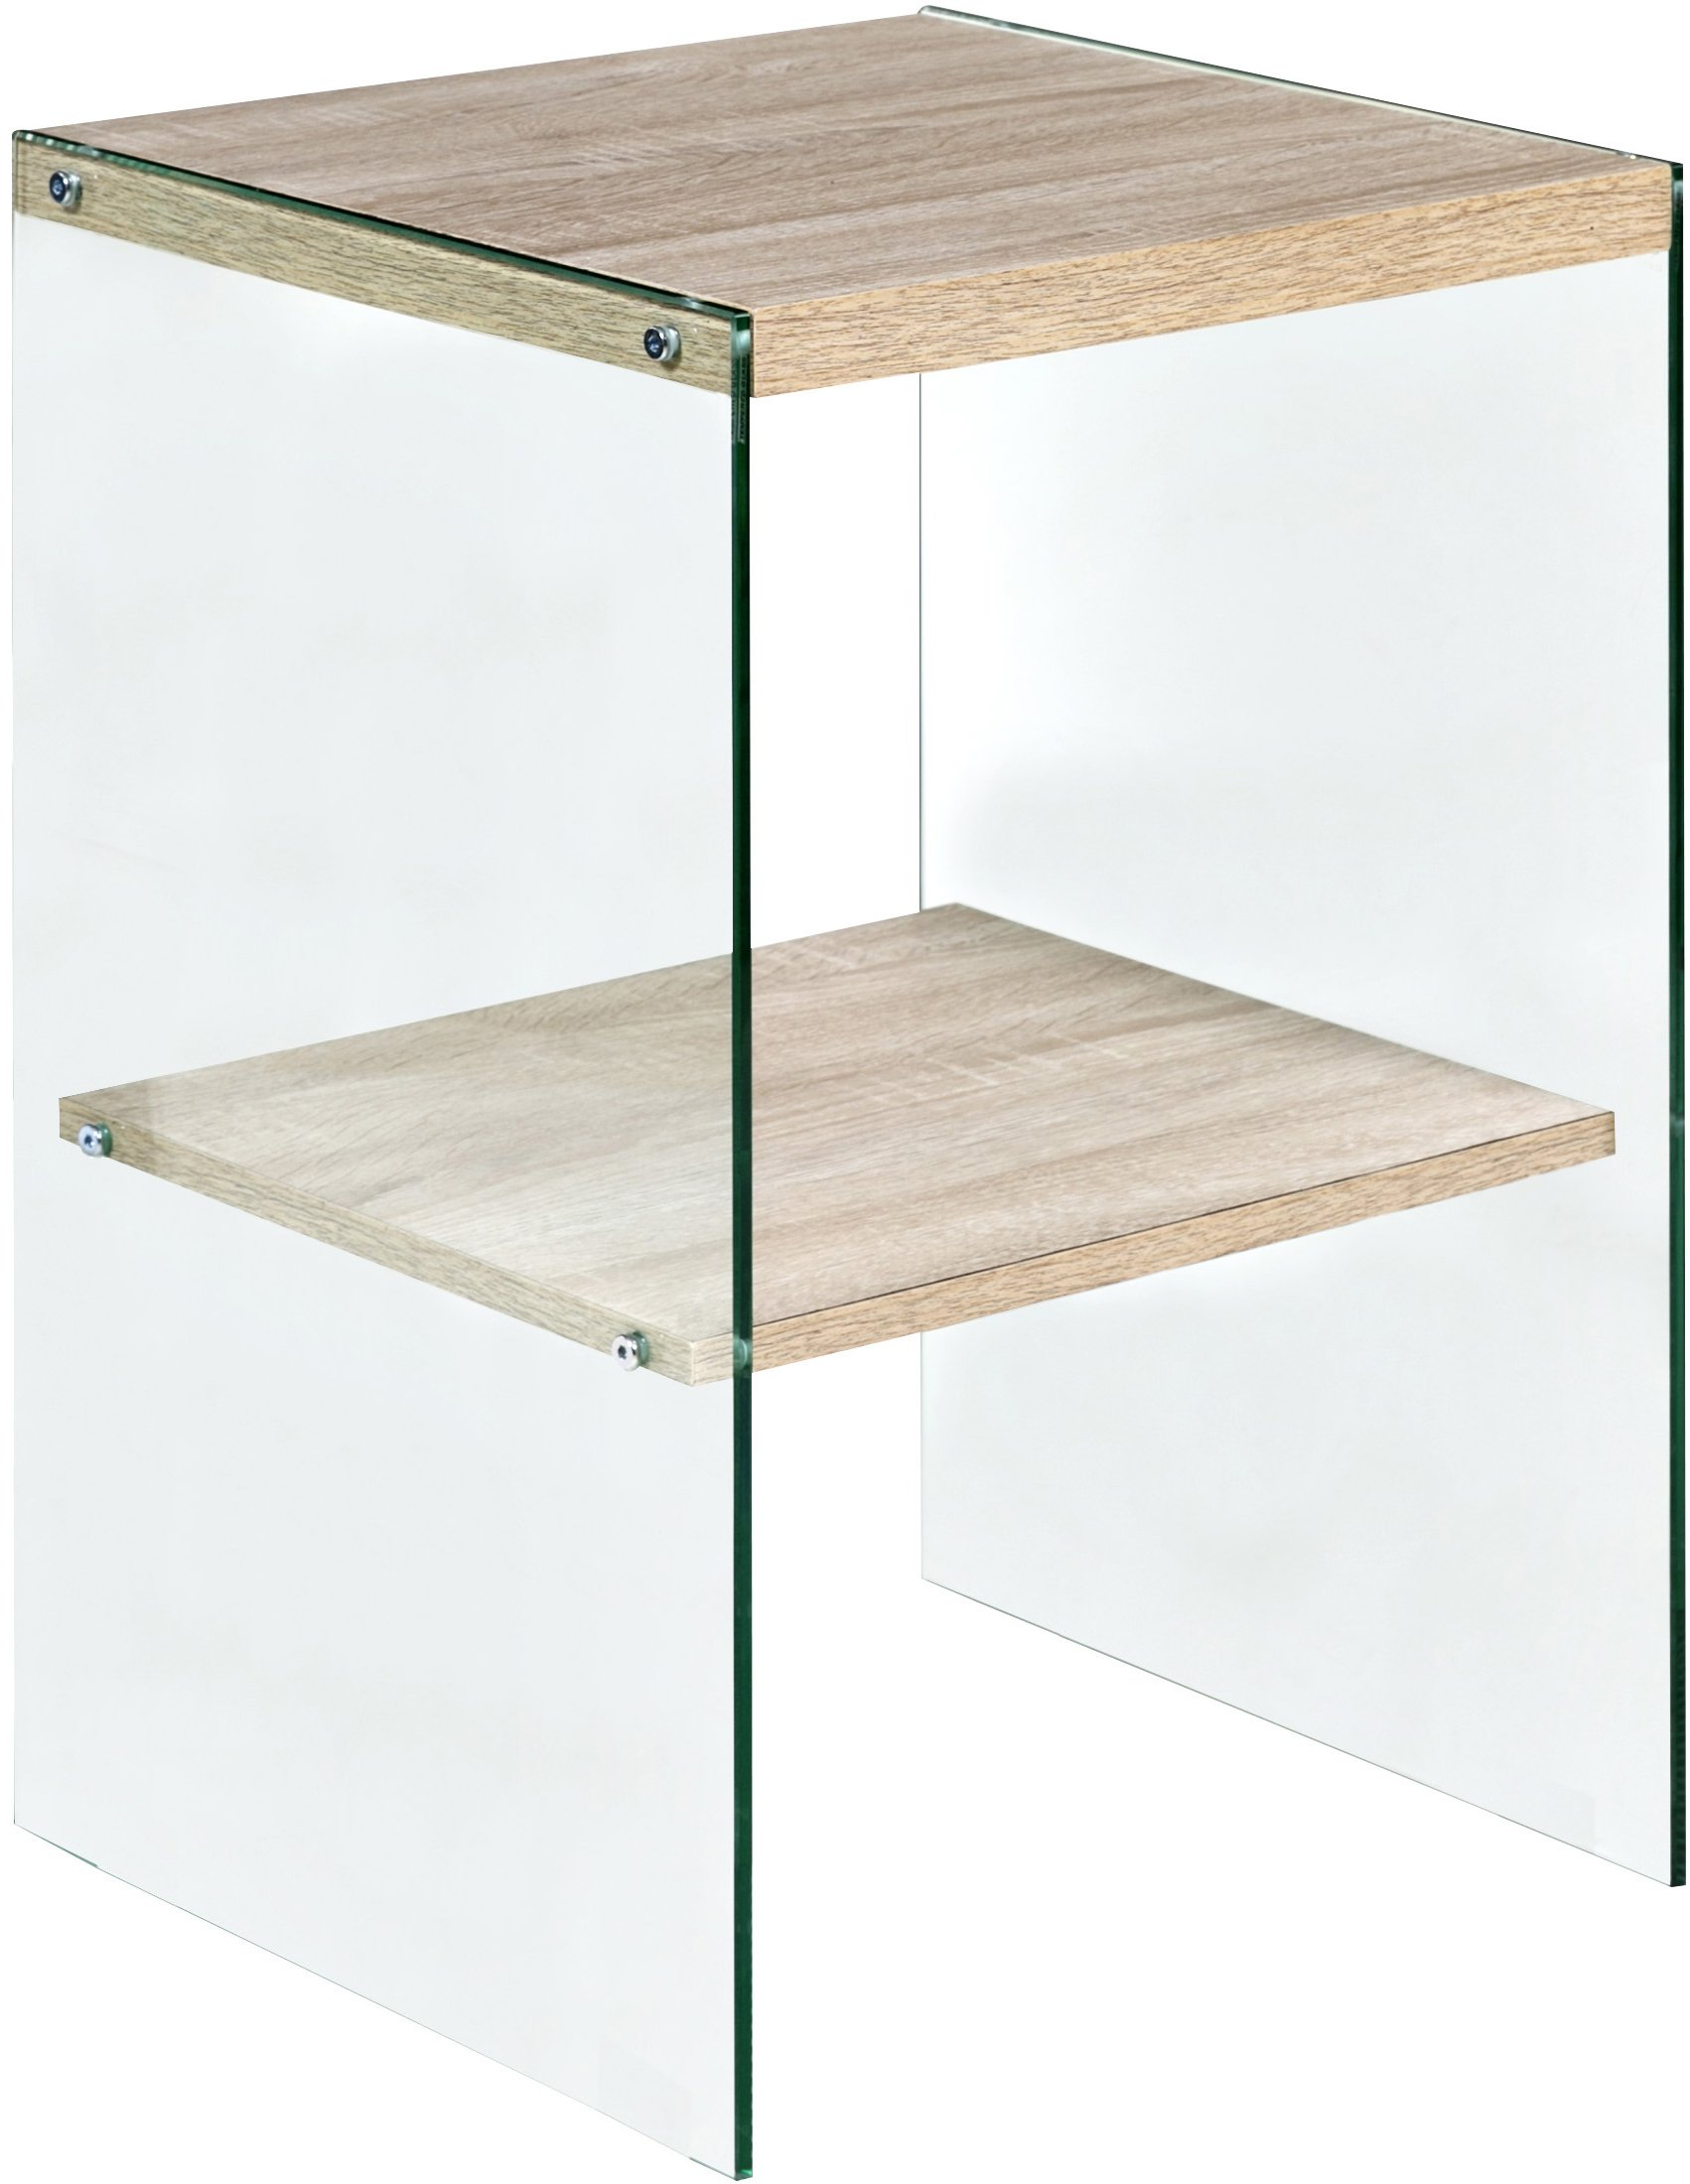 OneSpace 50-JN19ETLO Escher Skye Accent End Table, Glass and Wood, Light Oak